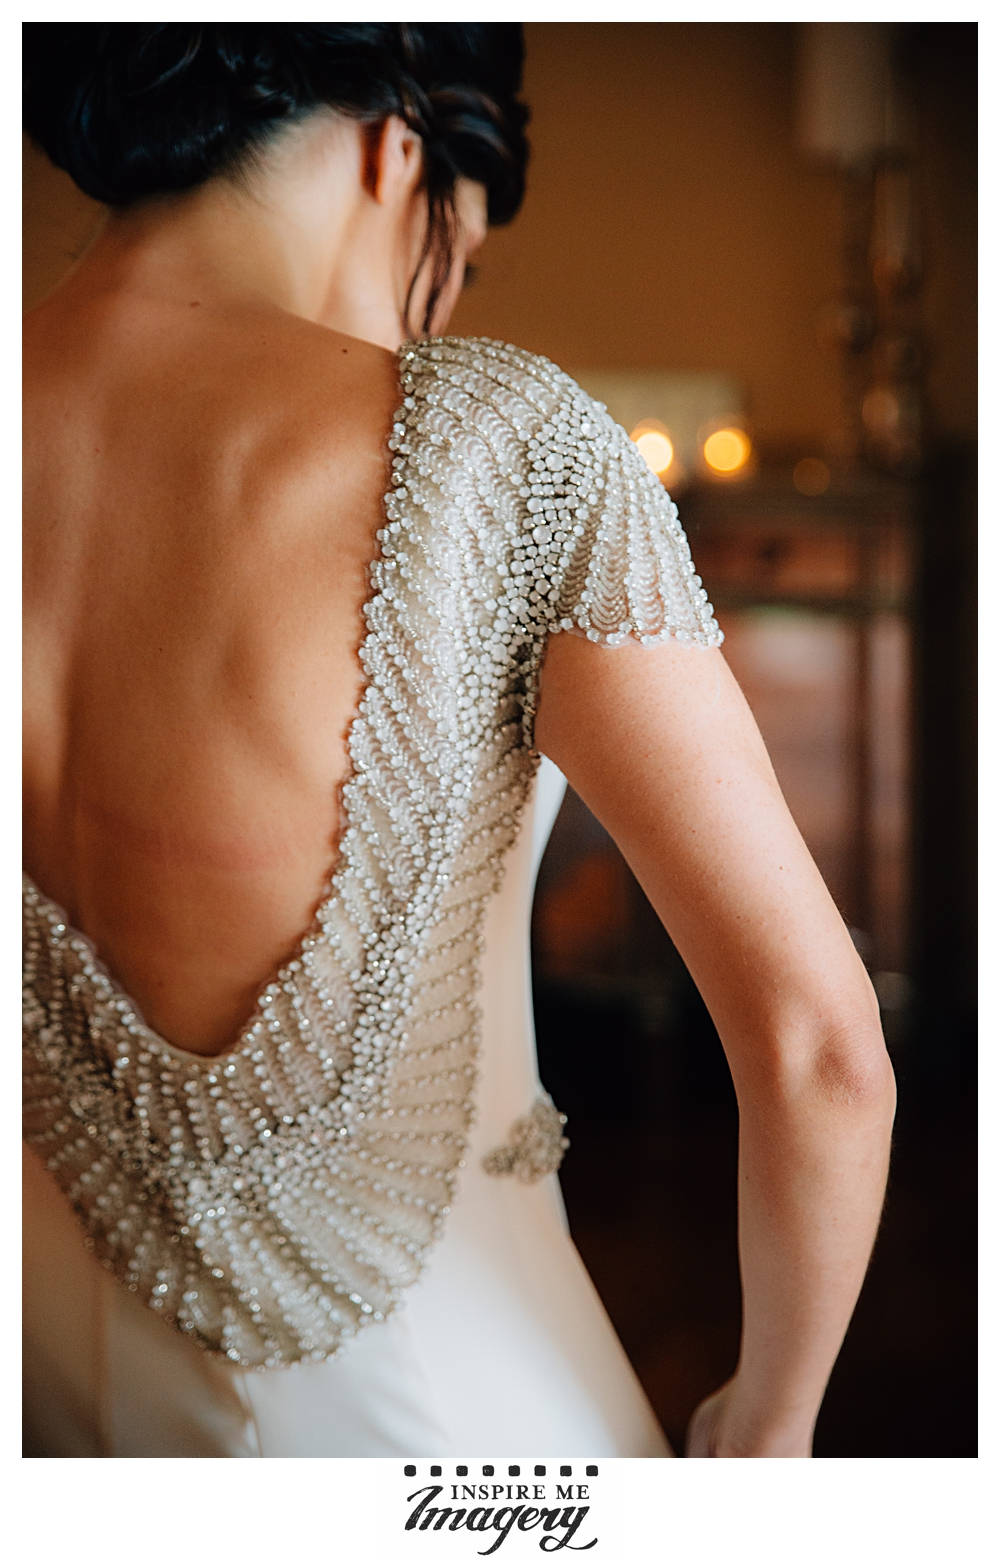 Not for nothing, but she was born for this gown. The low back and beading are so beautiful.